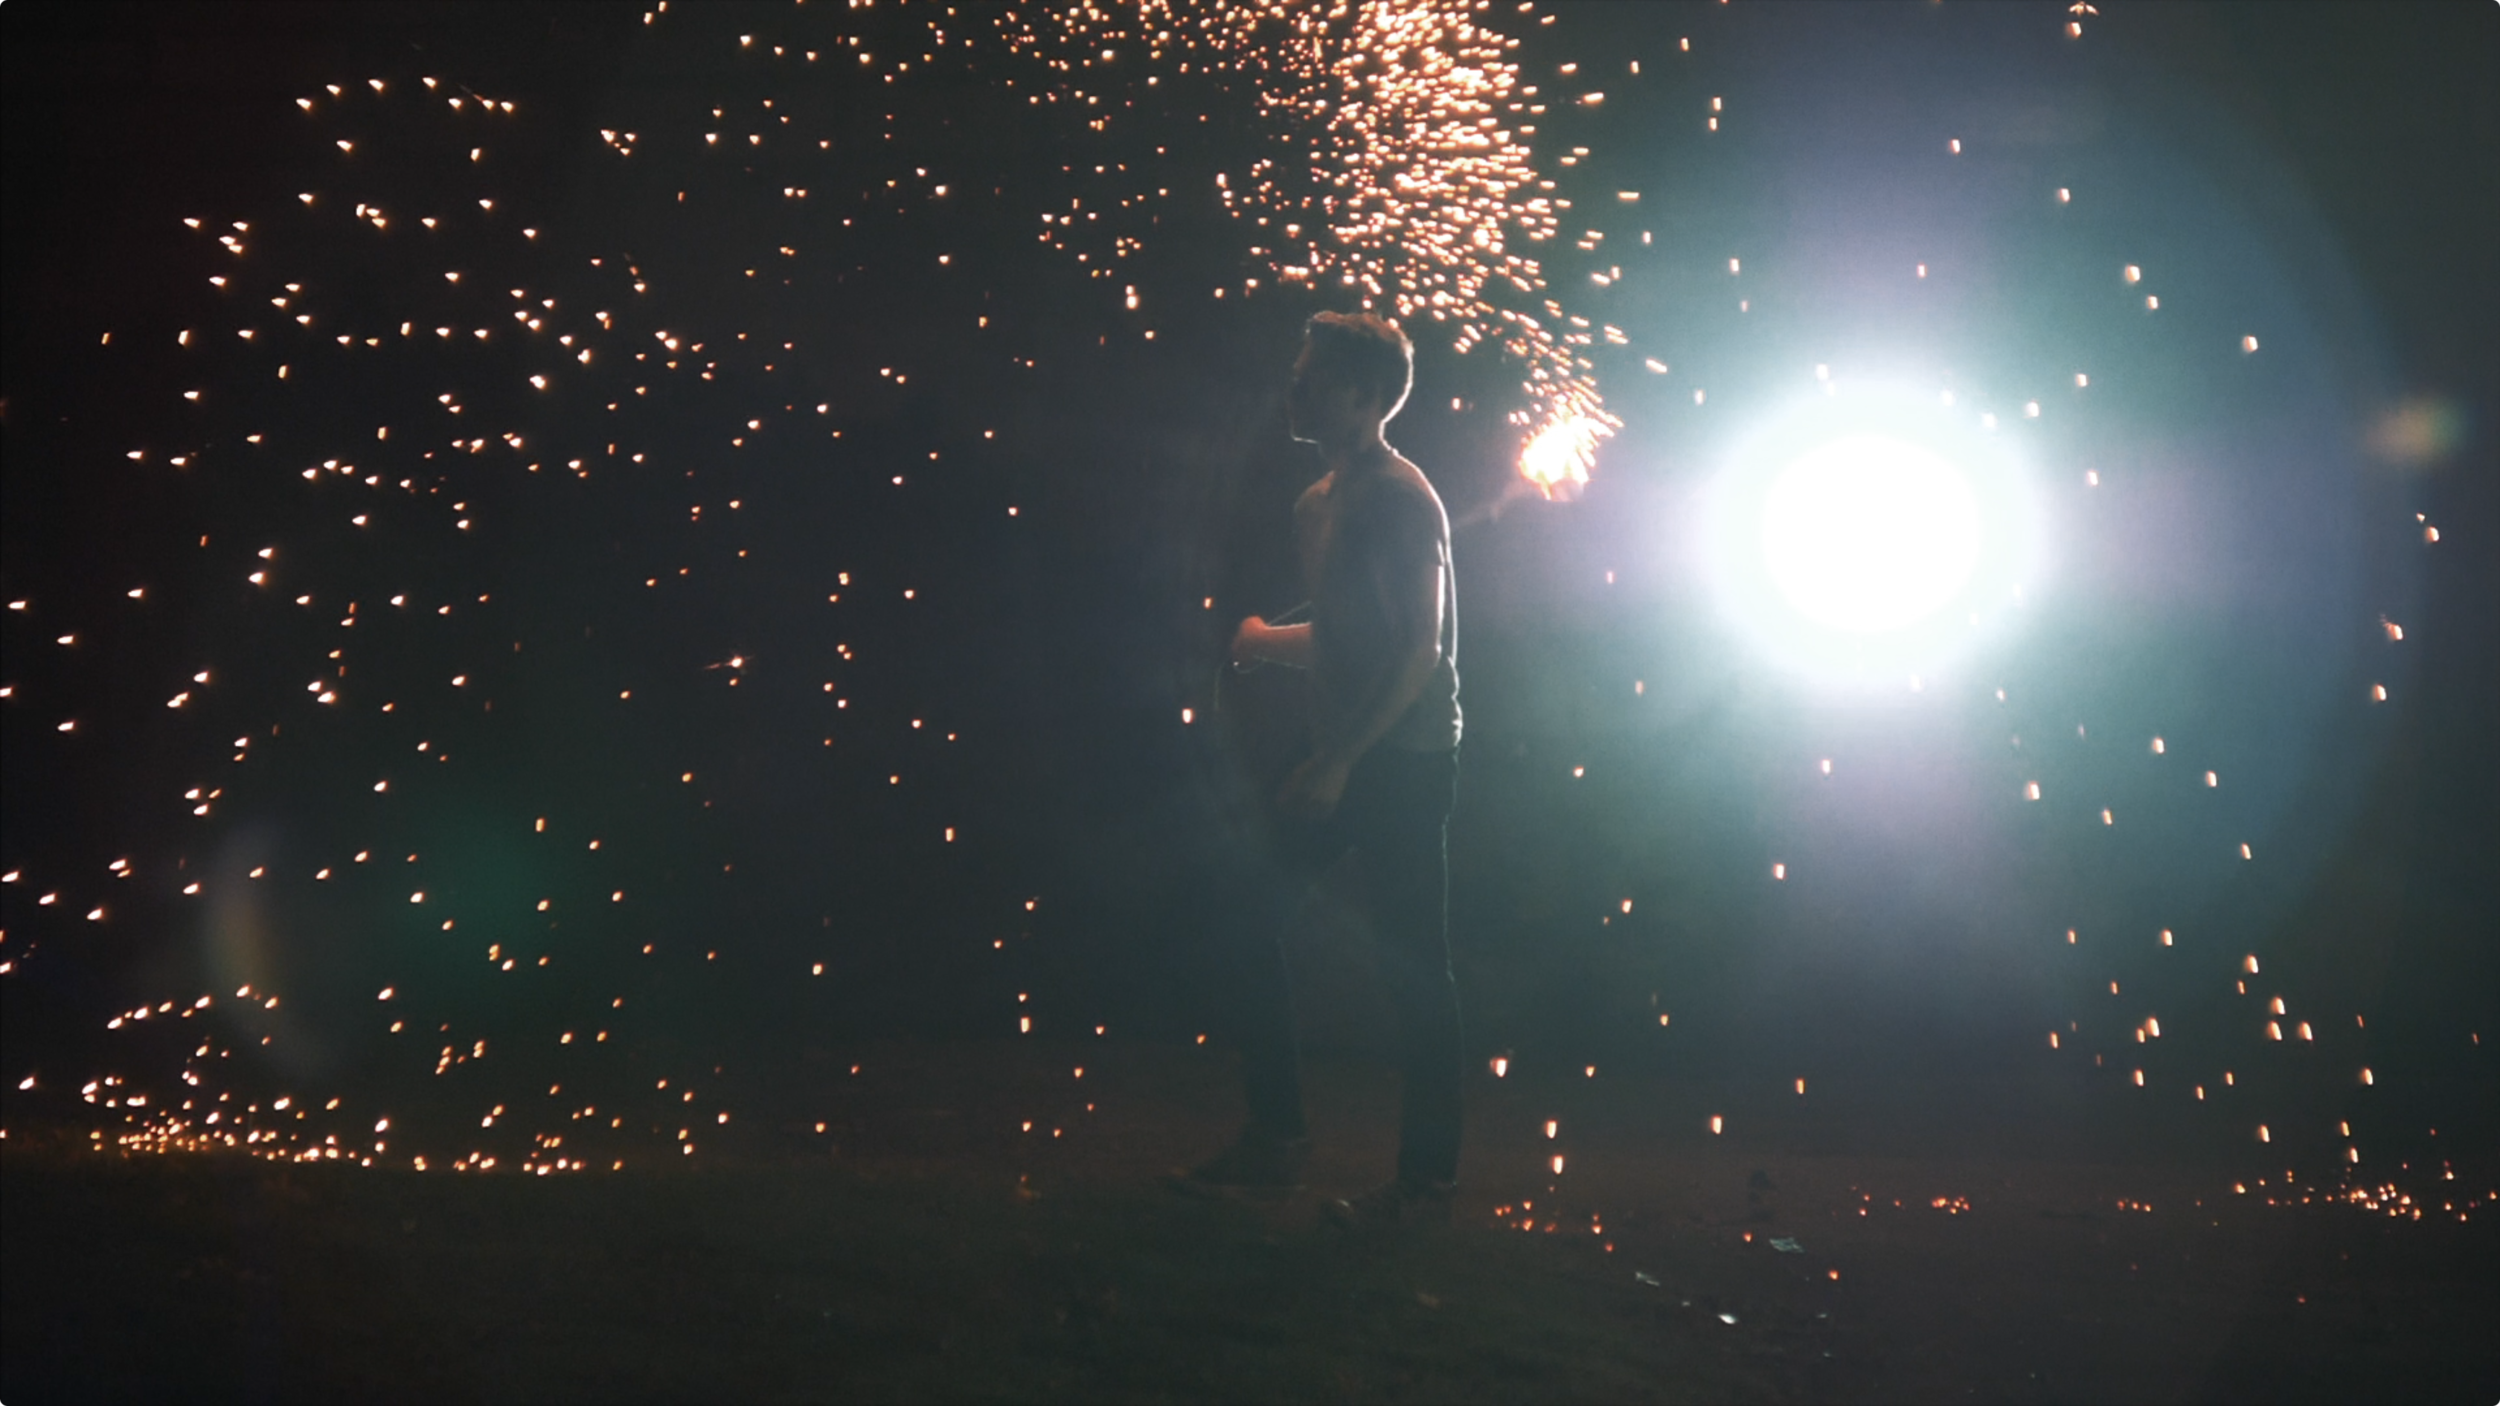 strong backlight photo from our indie music video with steel wool sparkler